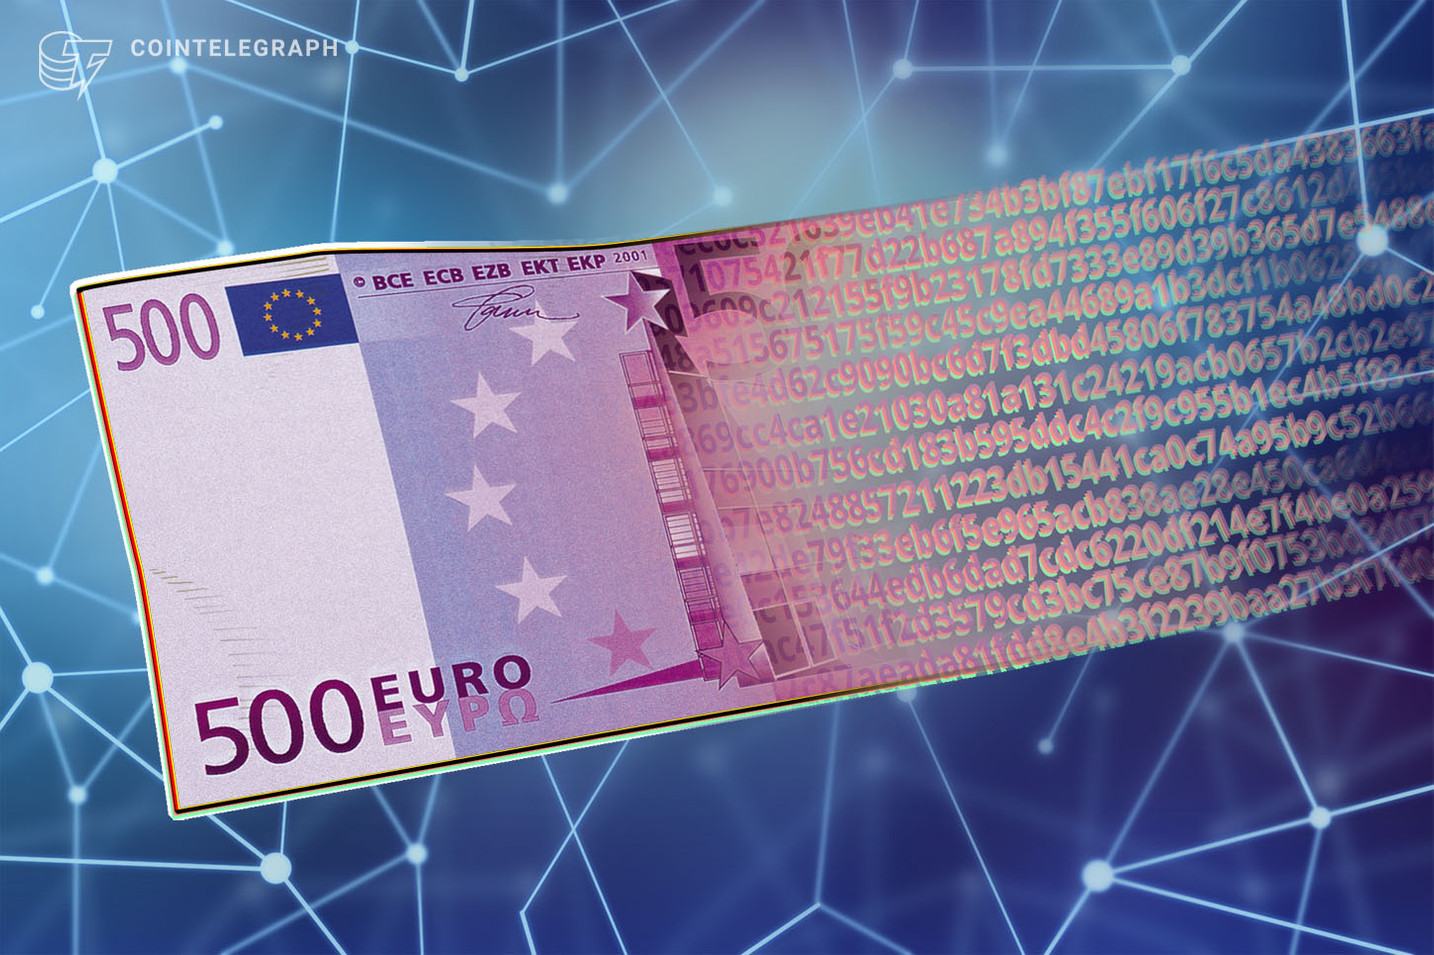 Digital euro will not be a substitute for cash: ECB President